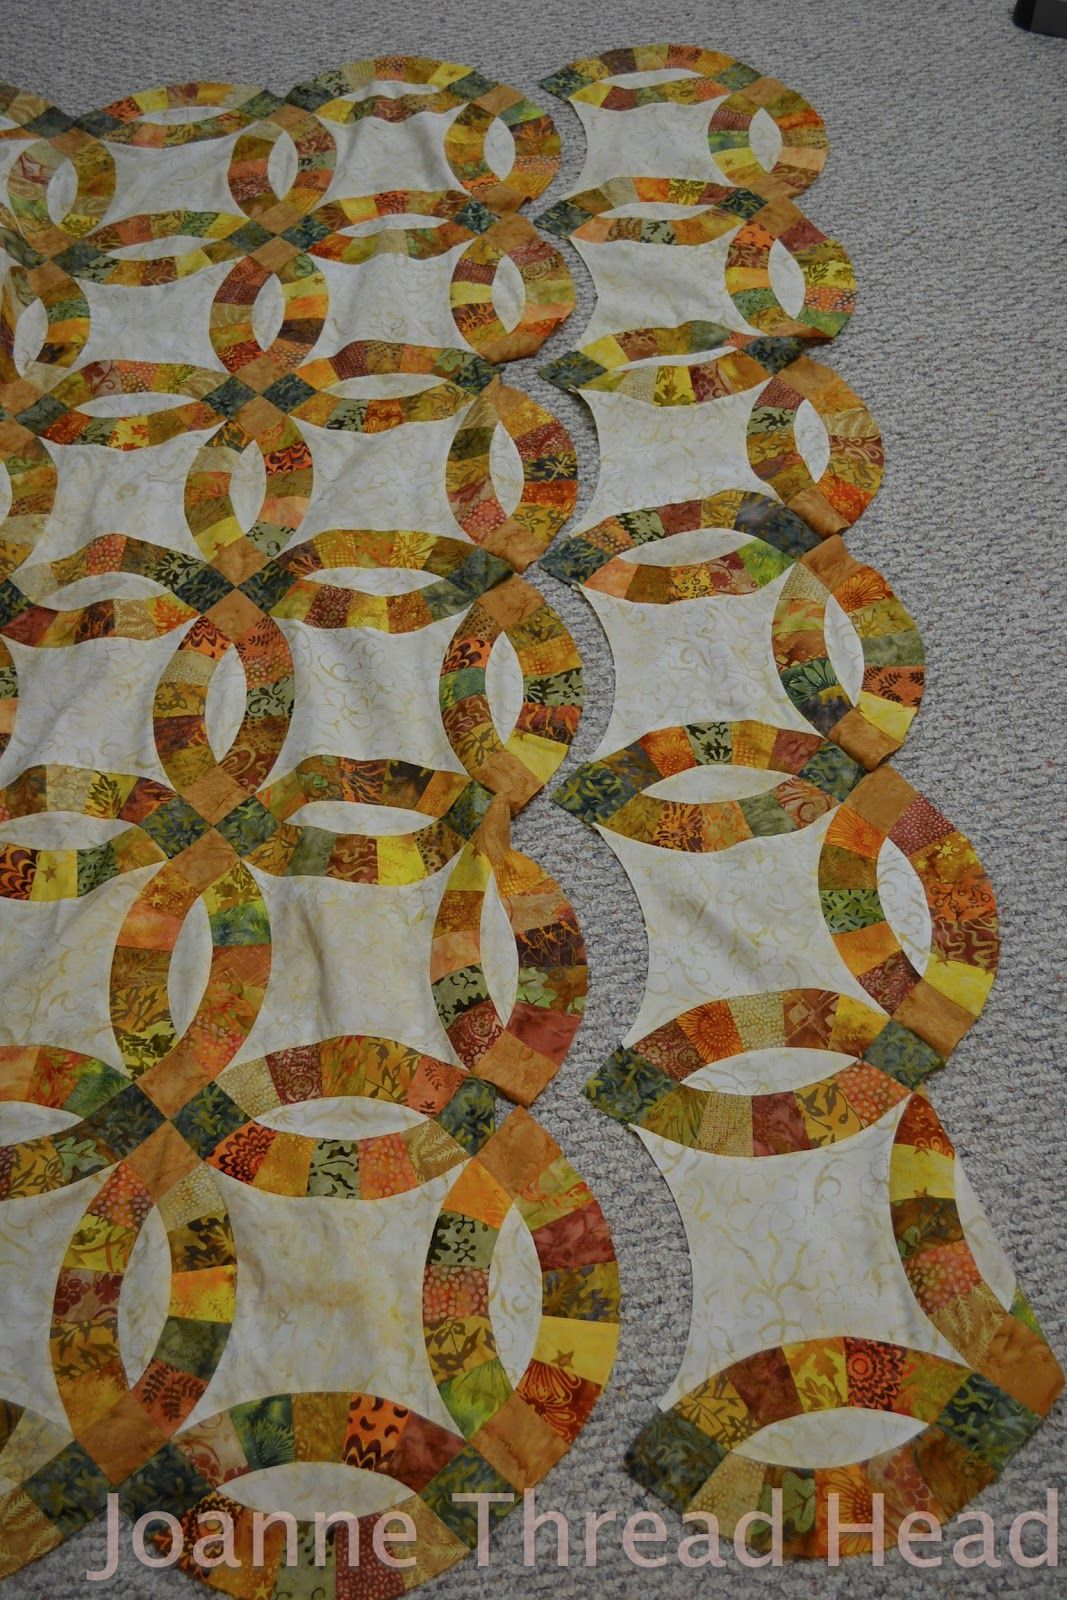 Thread Head My First Double Wedding Ring Quilt Using Accuquilt Cutting Tool